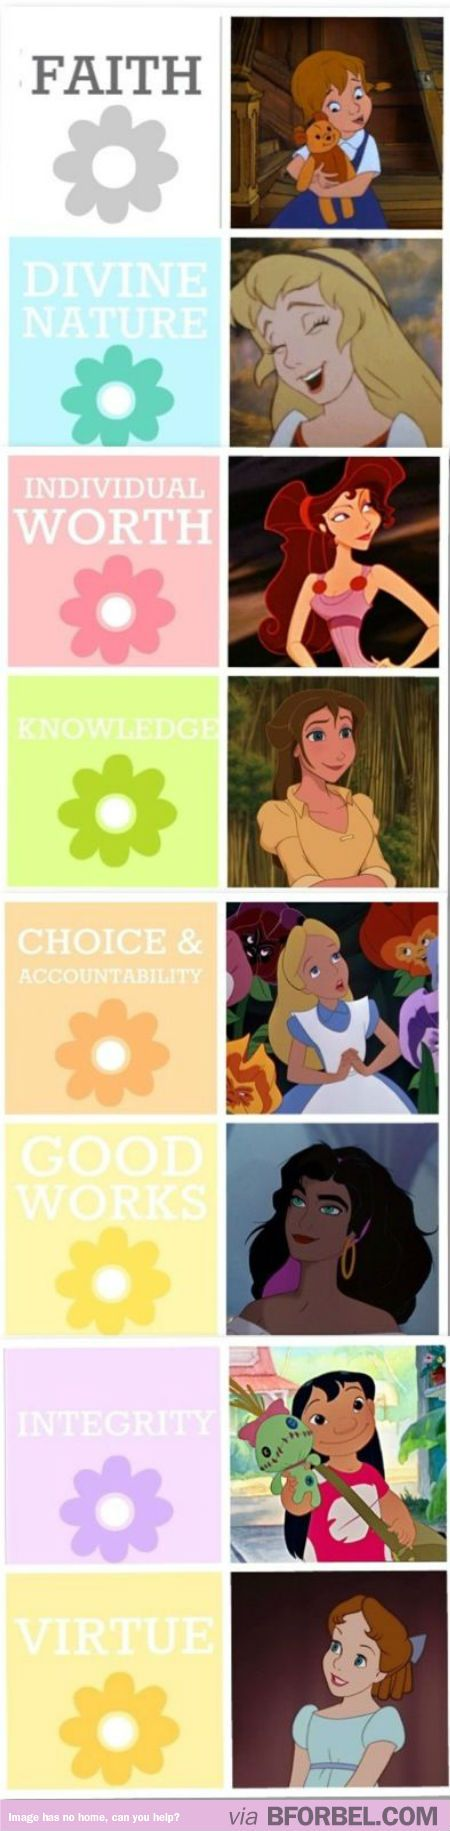 8 Disney Girls And What They Teach Us…- The LDS young women values